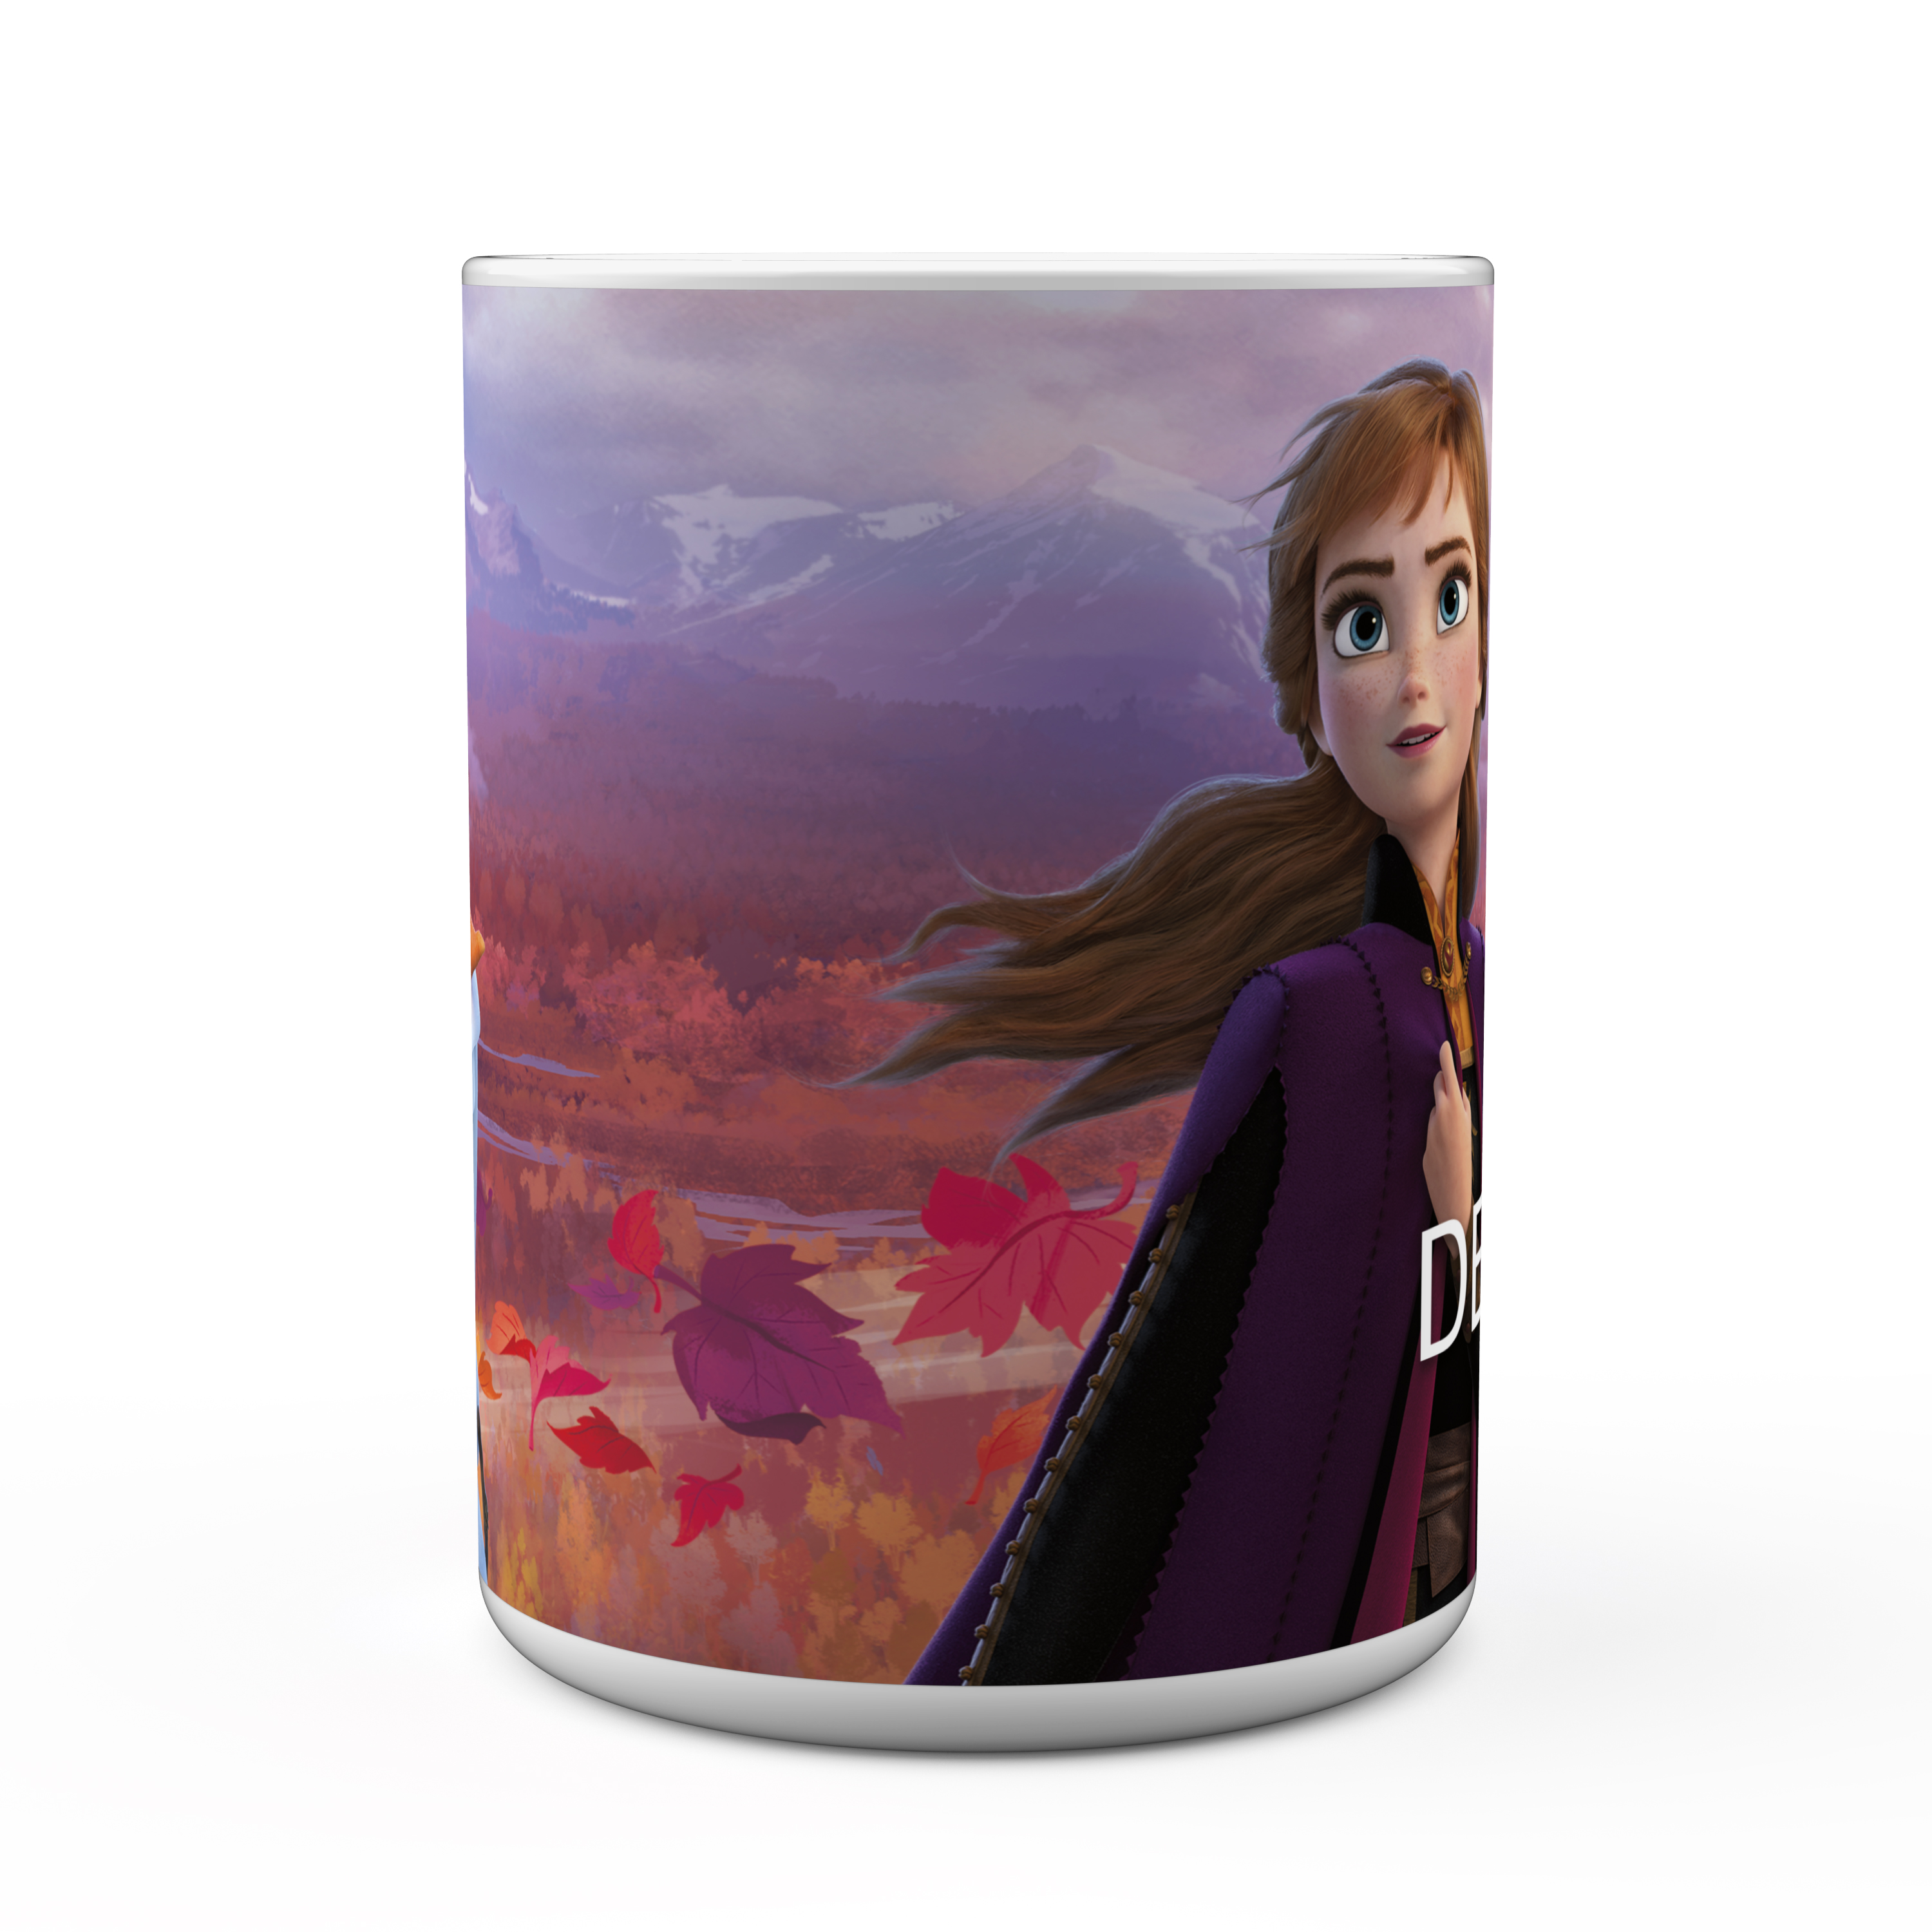 Disney Frozen 2 Movie 15 ounce Coffee Mug and Spoon, Anna, Elsa & Olaf slideshow image 3